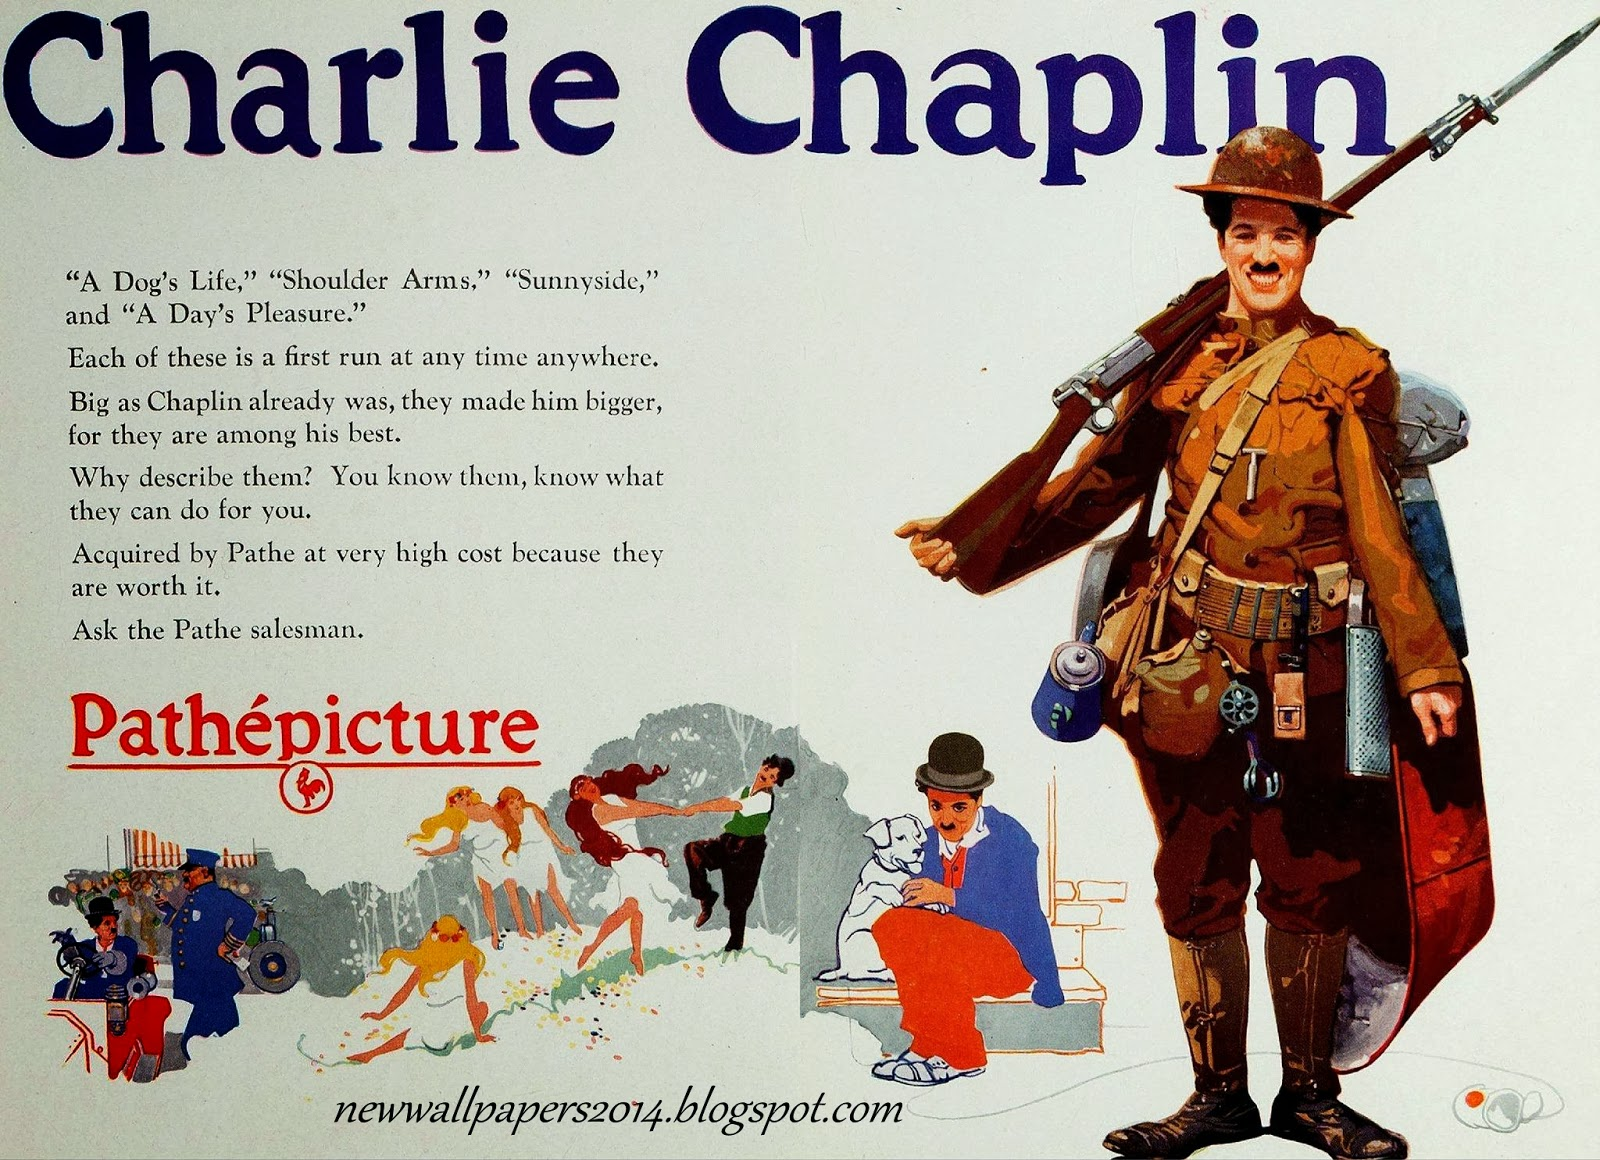 chaplin chat rooms Thrill your walls now with a stunning charlie chaplin (films) print from the world's largest art gallery choose from thousands of charlie chaplin (films) artworks with the option to print.